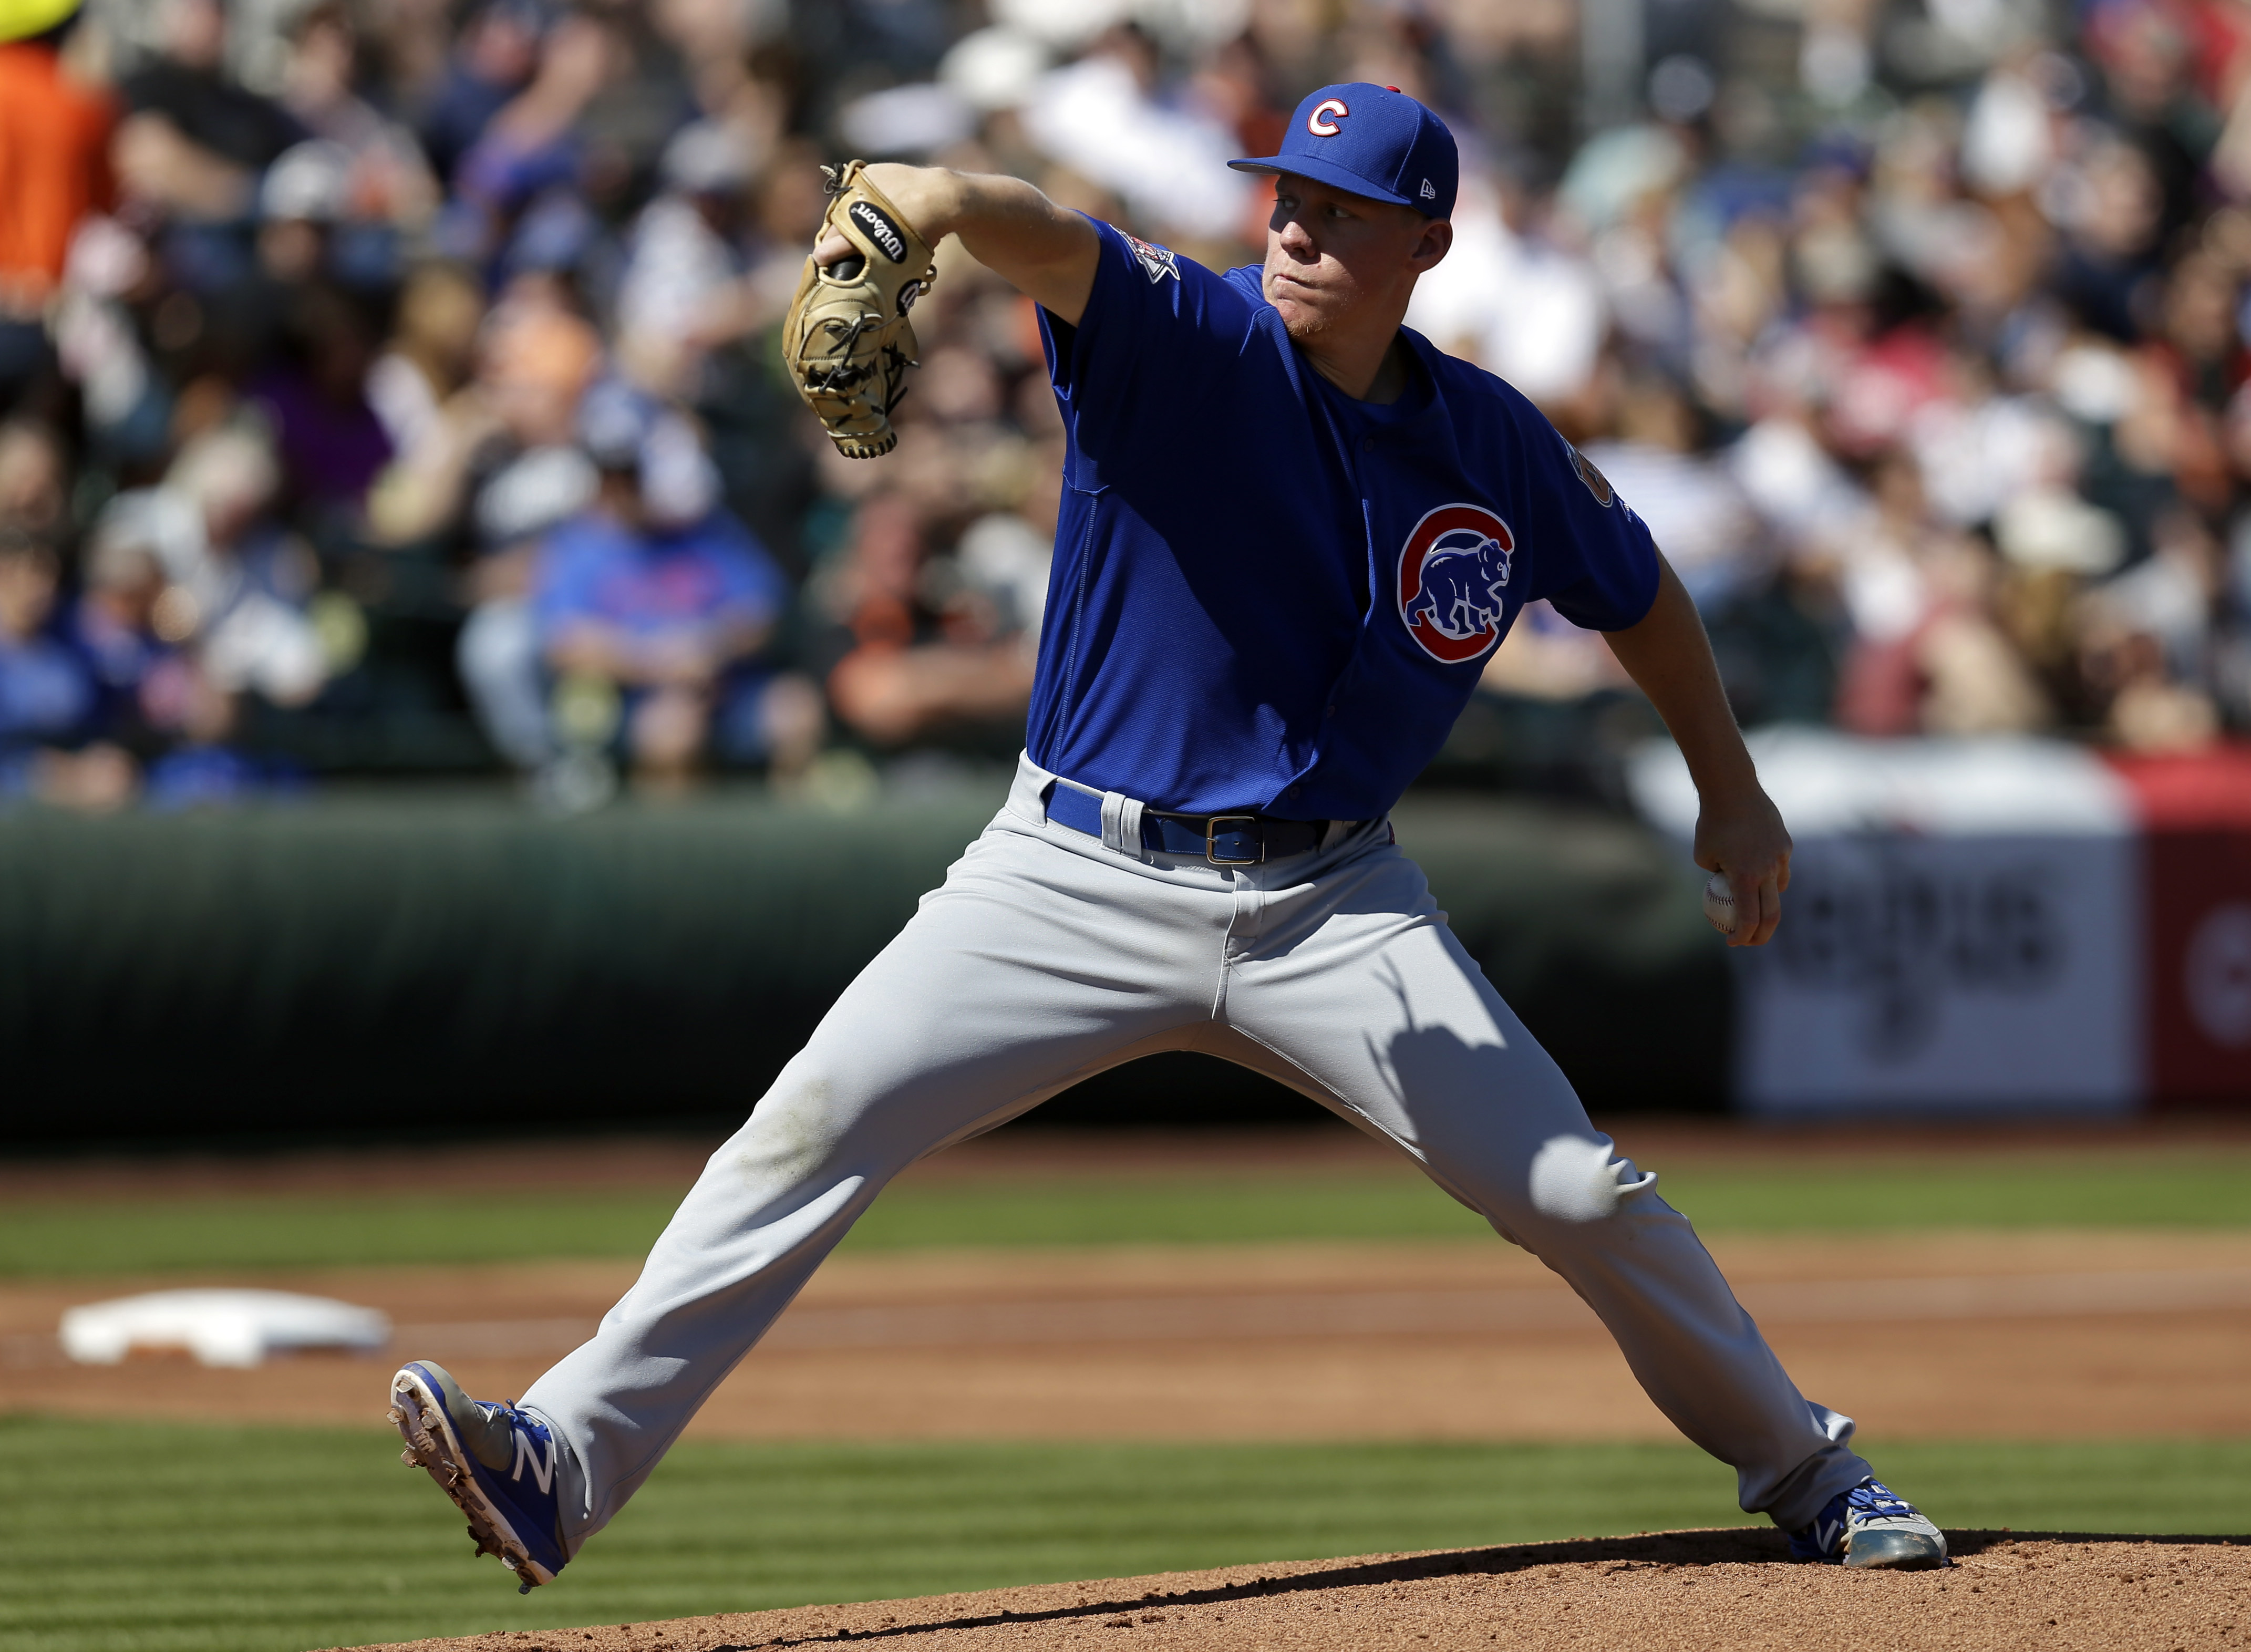 9899513-mlb-spring-training-chicago-cubs-at-san-francisco-giants